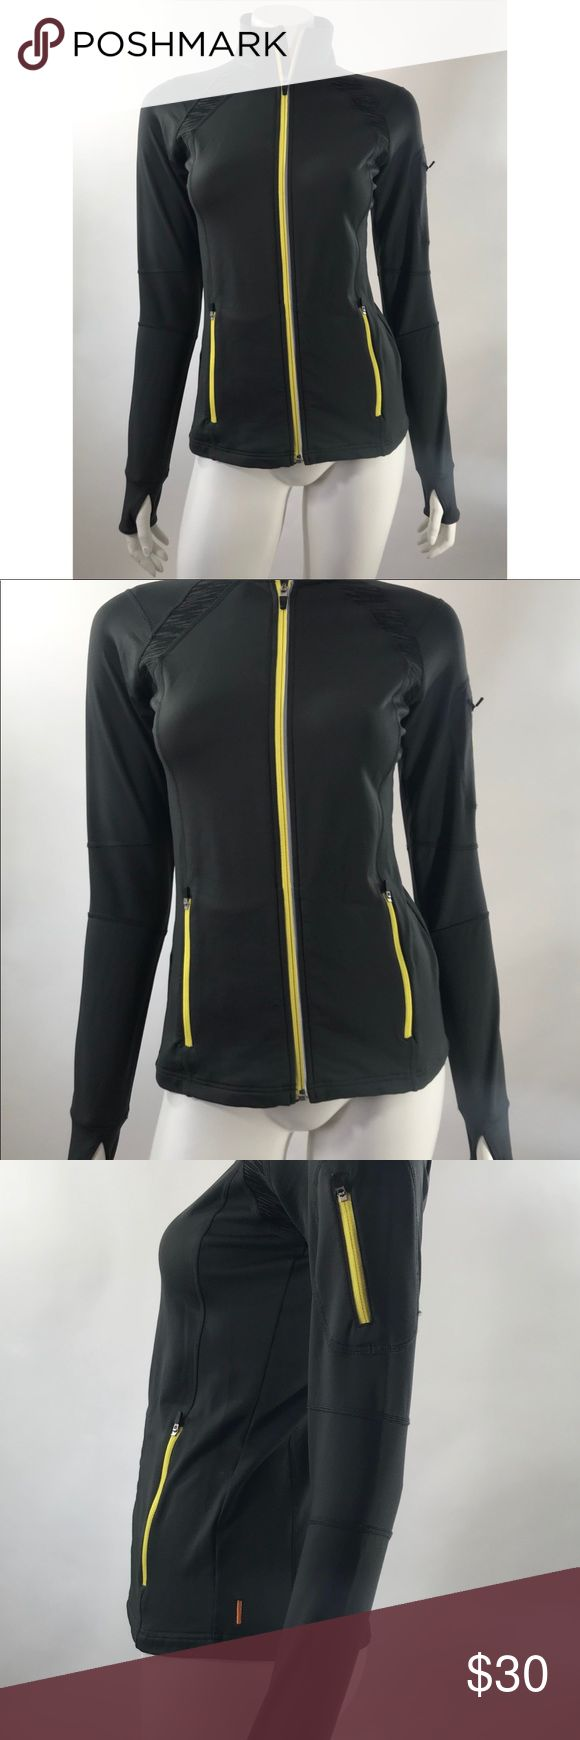 Lucy Activewear Jacket XS Gray Zip Up Long Sleeve Lucy Activewear Womens Jacket XS Gray Zip Up Long Sleeve Thumb Holes Athletic. Measurements: (in inches) Underarm to underarm: 16.5 Length: 24  Good, gently used condition Lucy Jackets & Coats